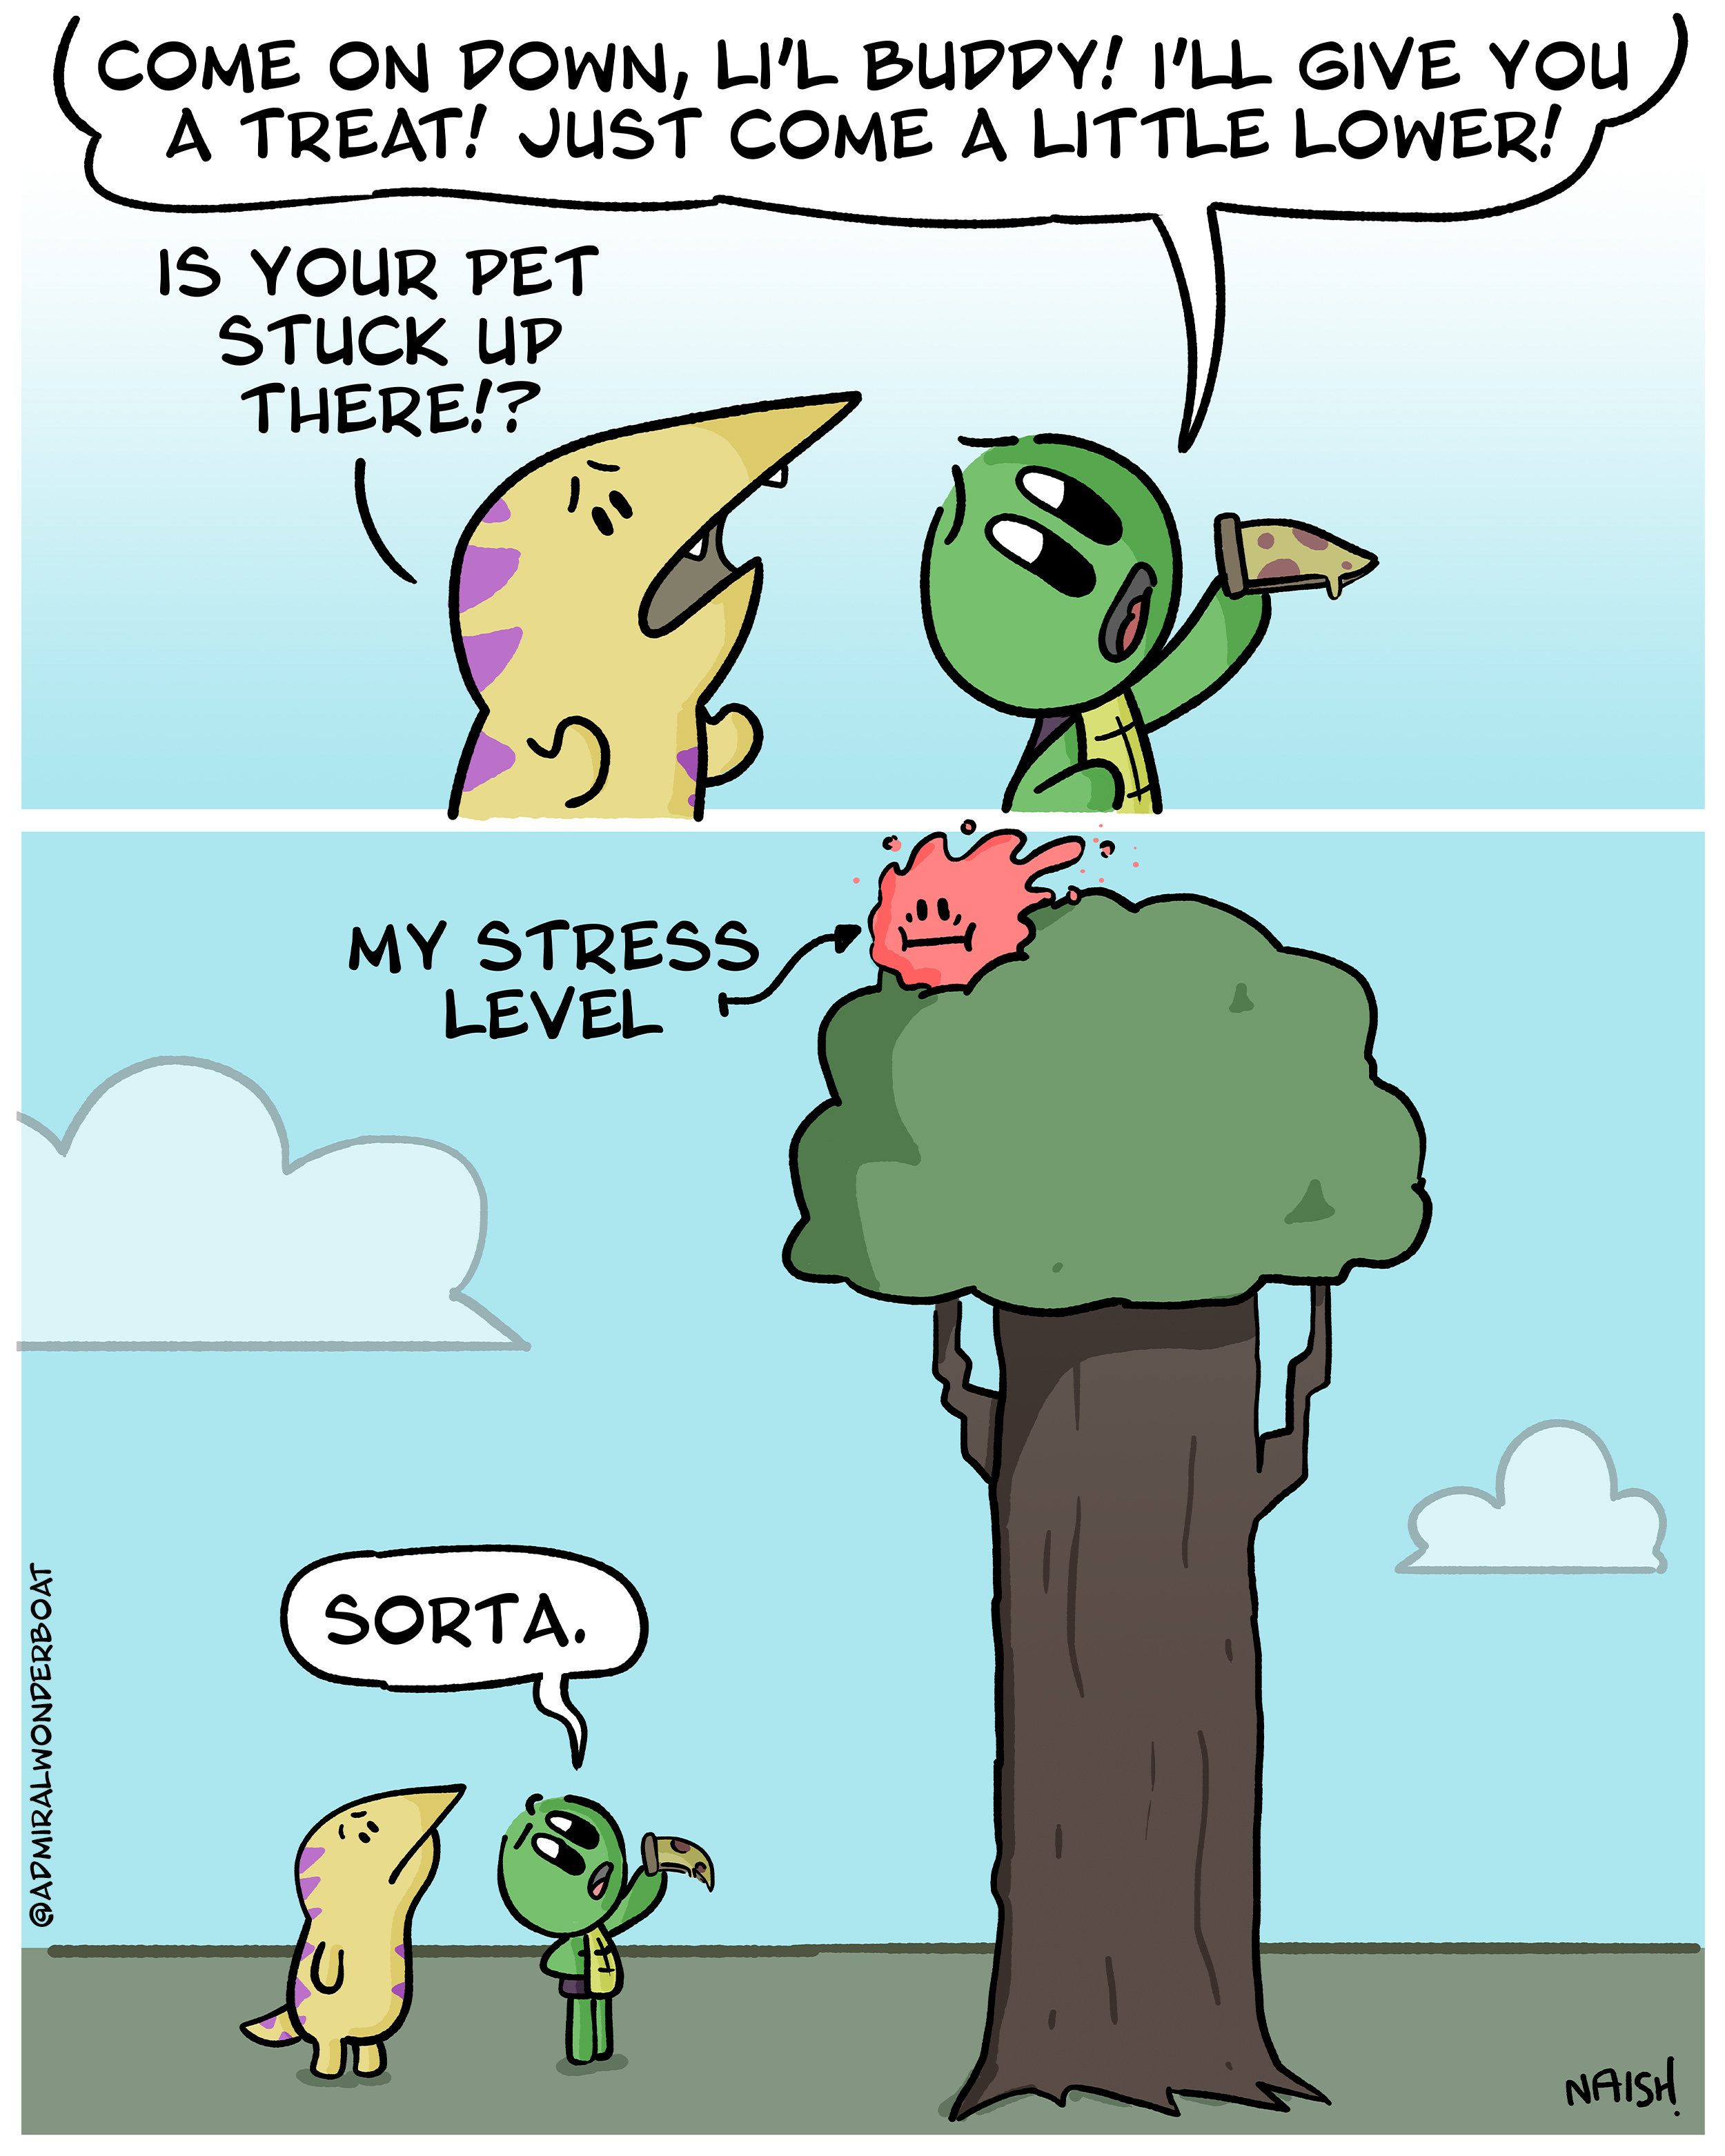 a cartoon turtle seems to be goading their pet out of a tree. when someone inquires if the pet is stuck, the turtle says kind of and it's revealed they're actually just trying to lower their stress levels from tree level